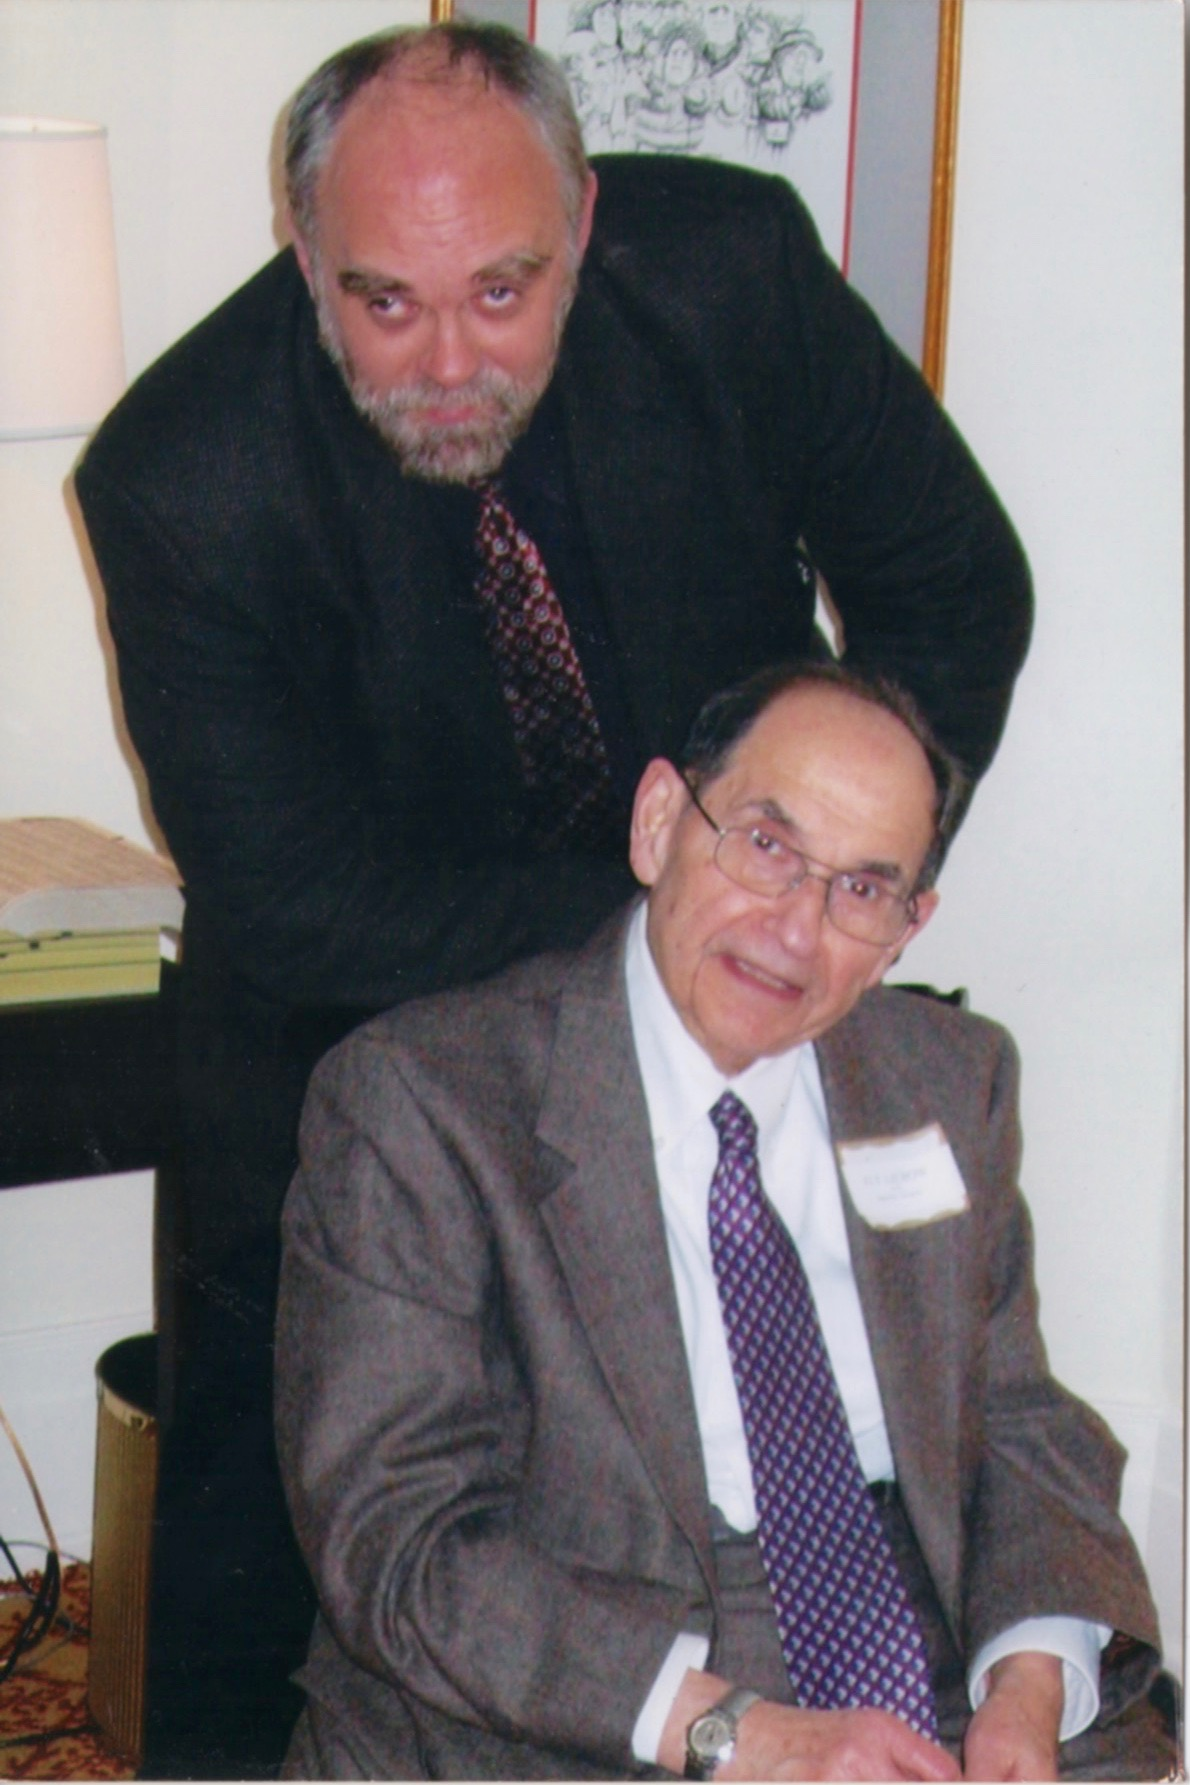 David Morrill and Ely Liebow in our Hotel Algonquin Room in the early 2000s.